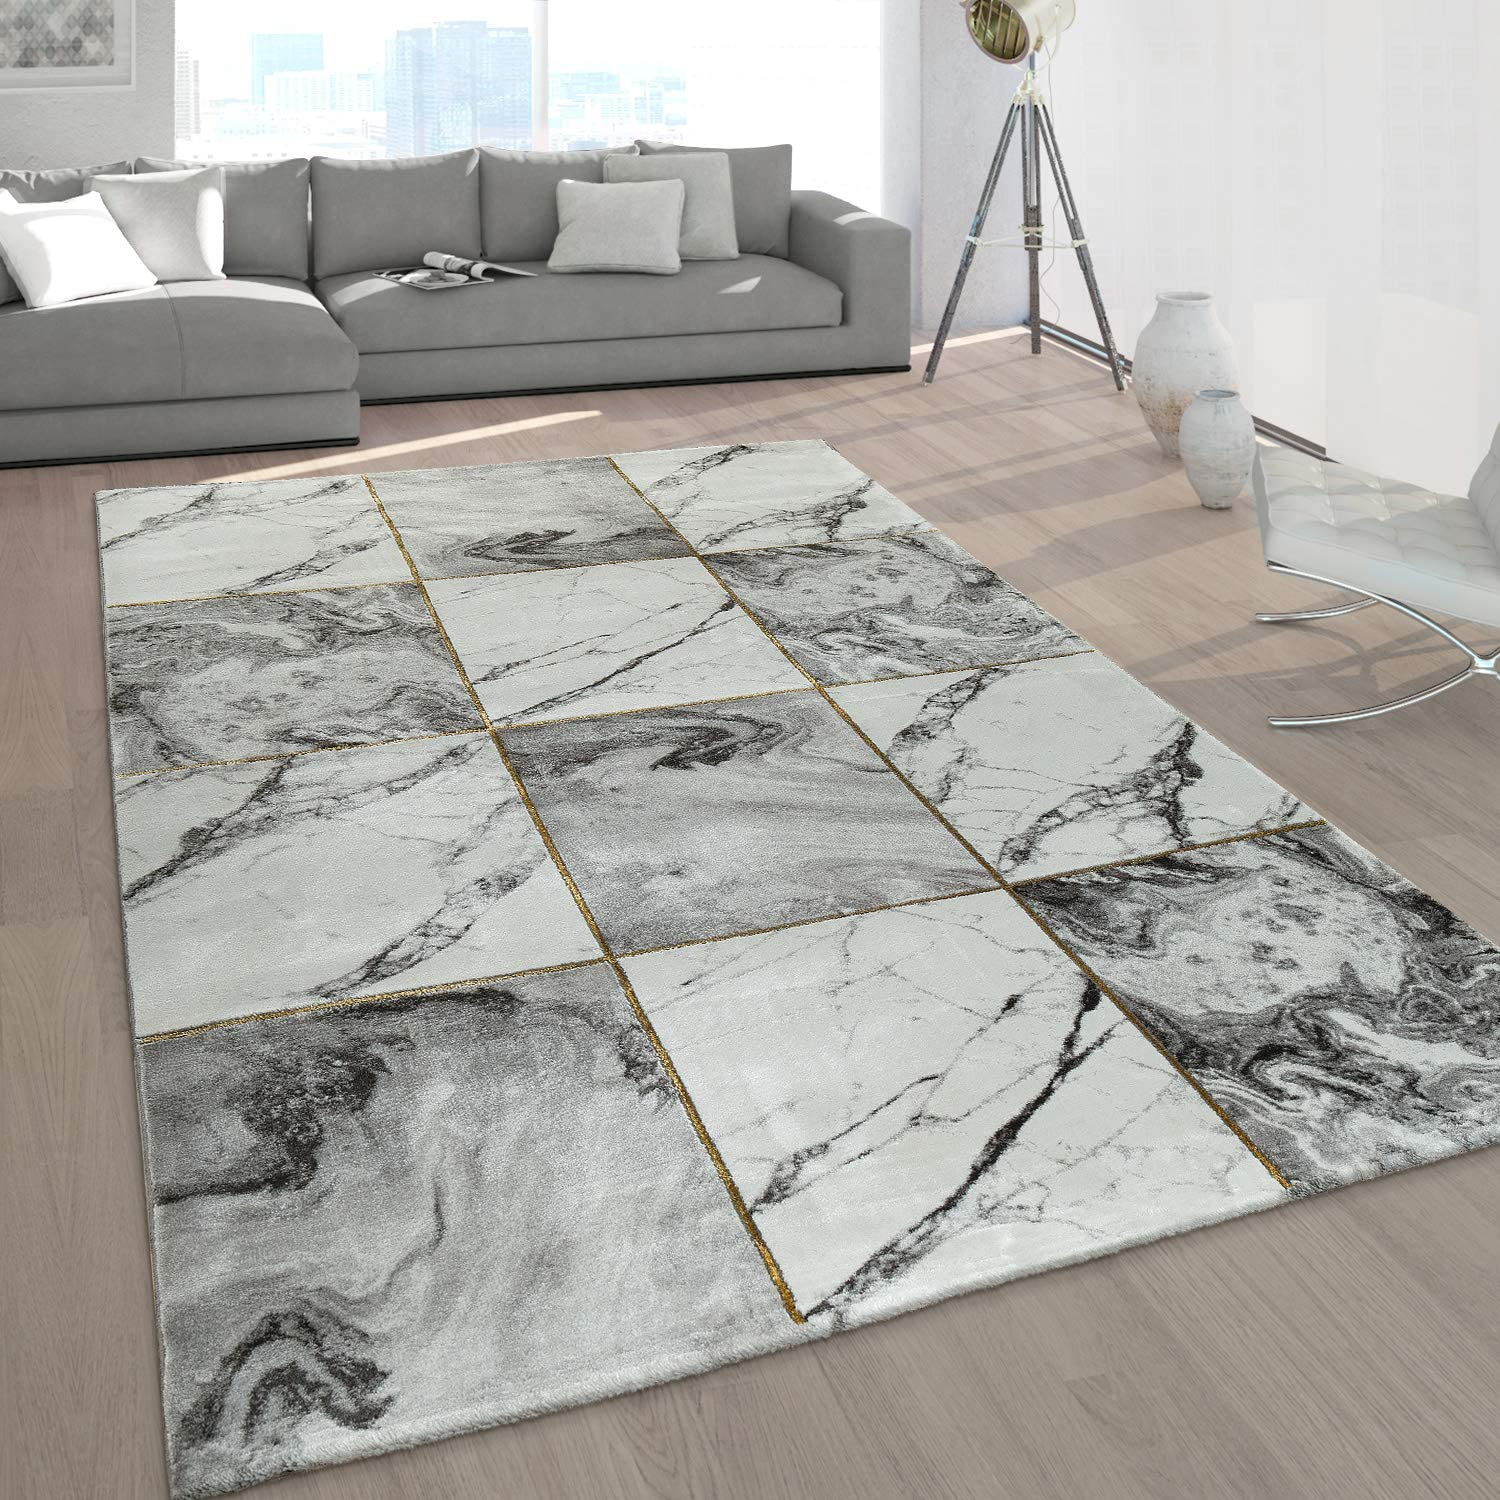 Large Rug Living Room Rug Pattern Grey Gold Soft Marble Effect Various Designs Size 160x230 Cm Colour Gold Amazon Co Uk Kitchen Home